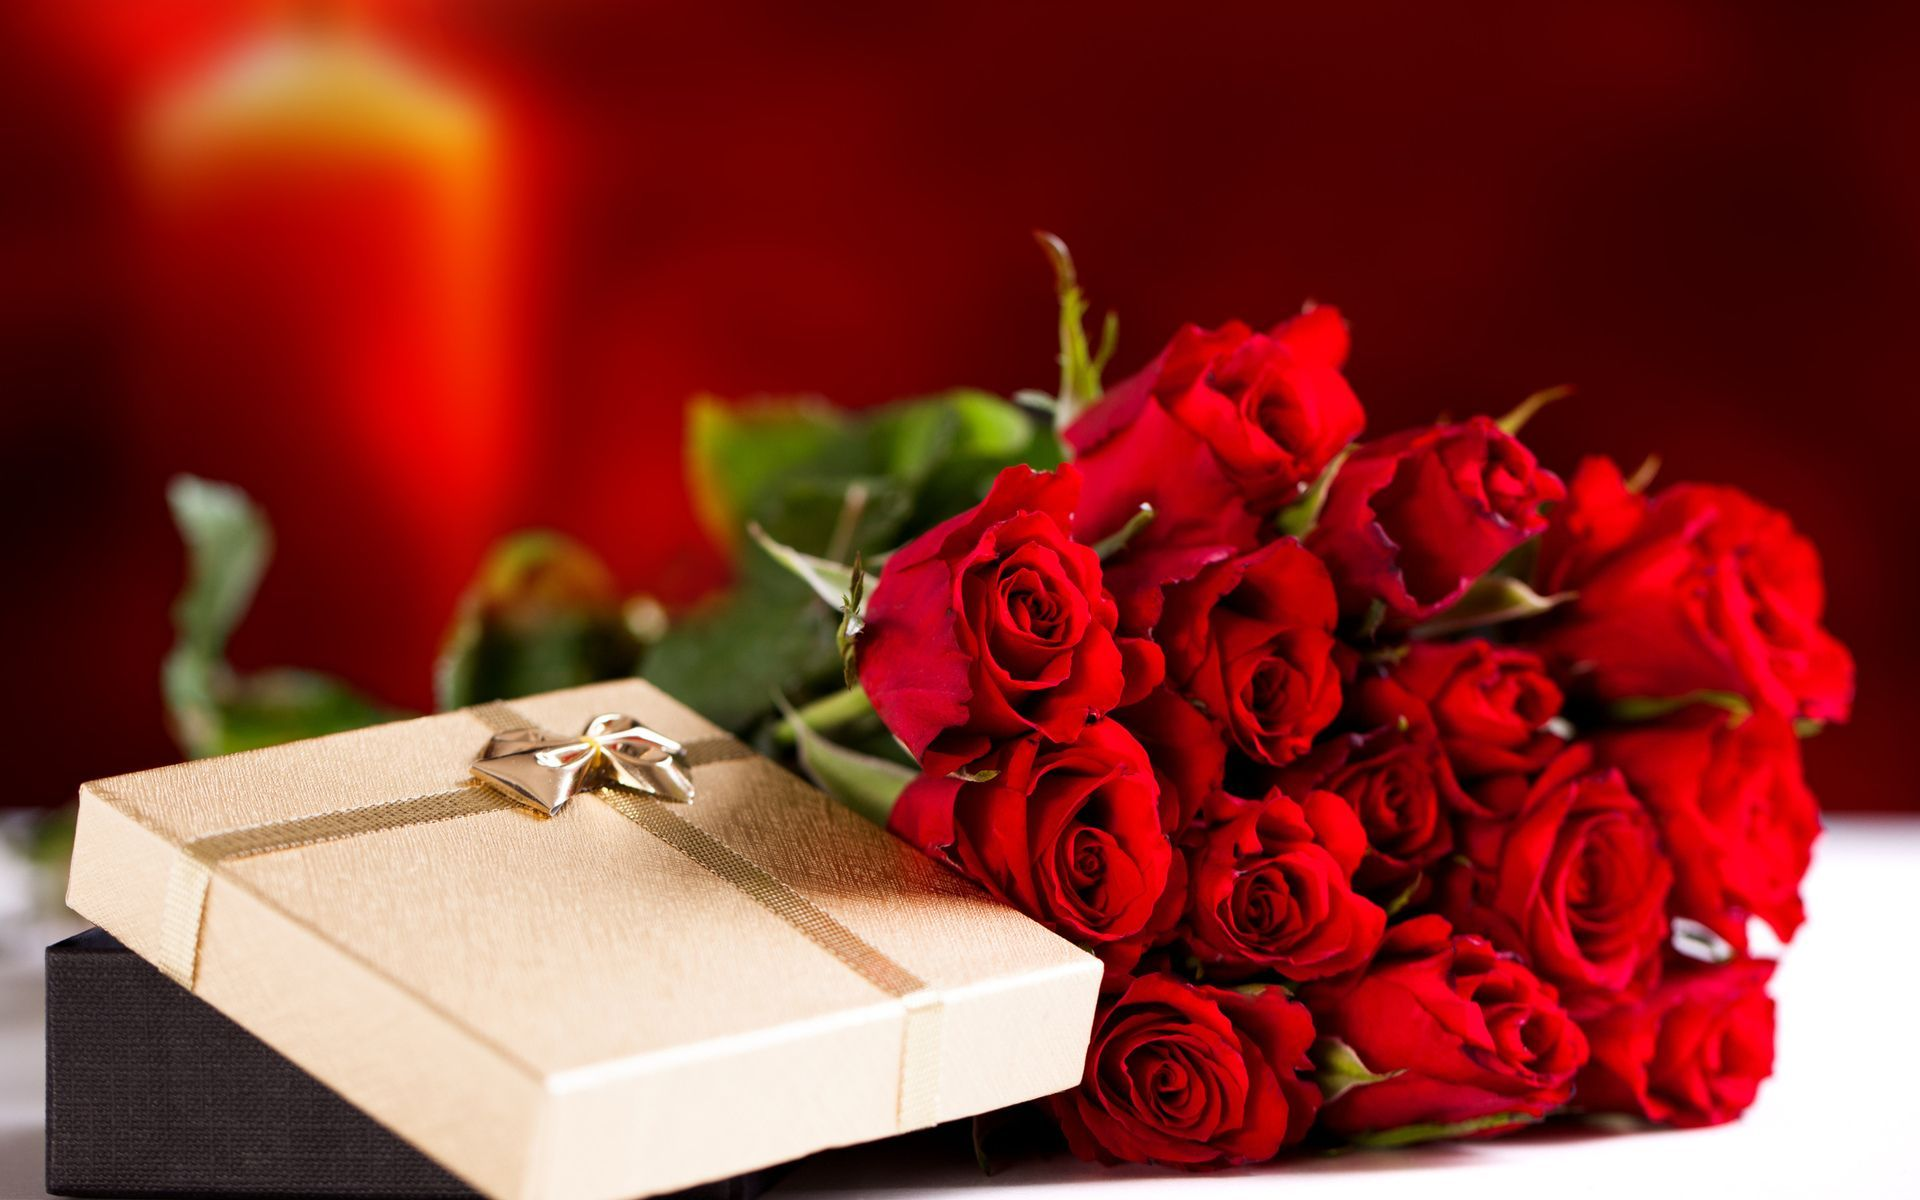 cool-roses-arrangements-also-chocolate-valentines-on-beige-and-black-decoration-box-for-your-loved-one-for-valentines-day-gifts-and-decoration-design-ideas